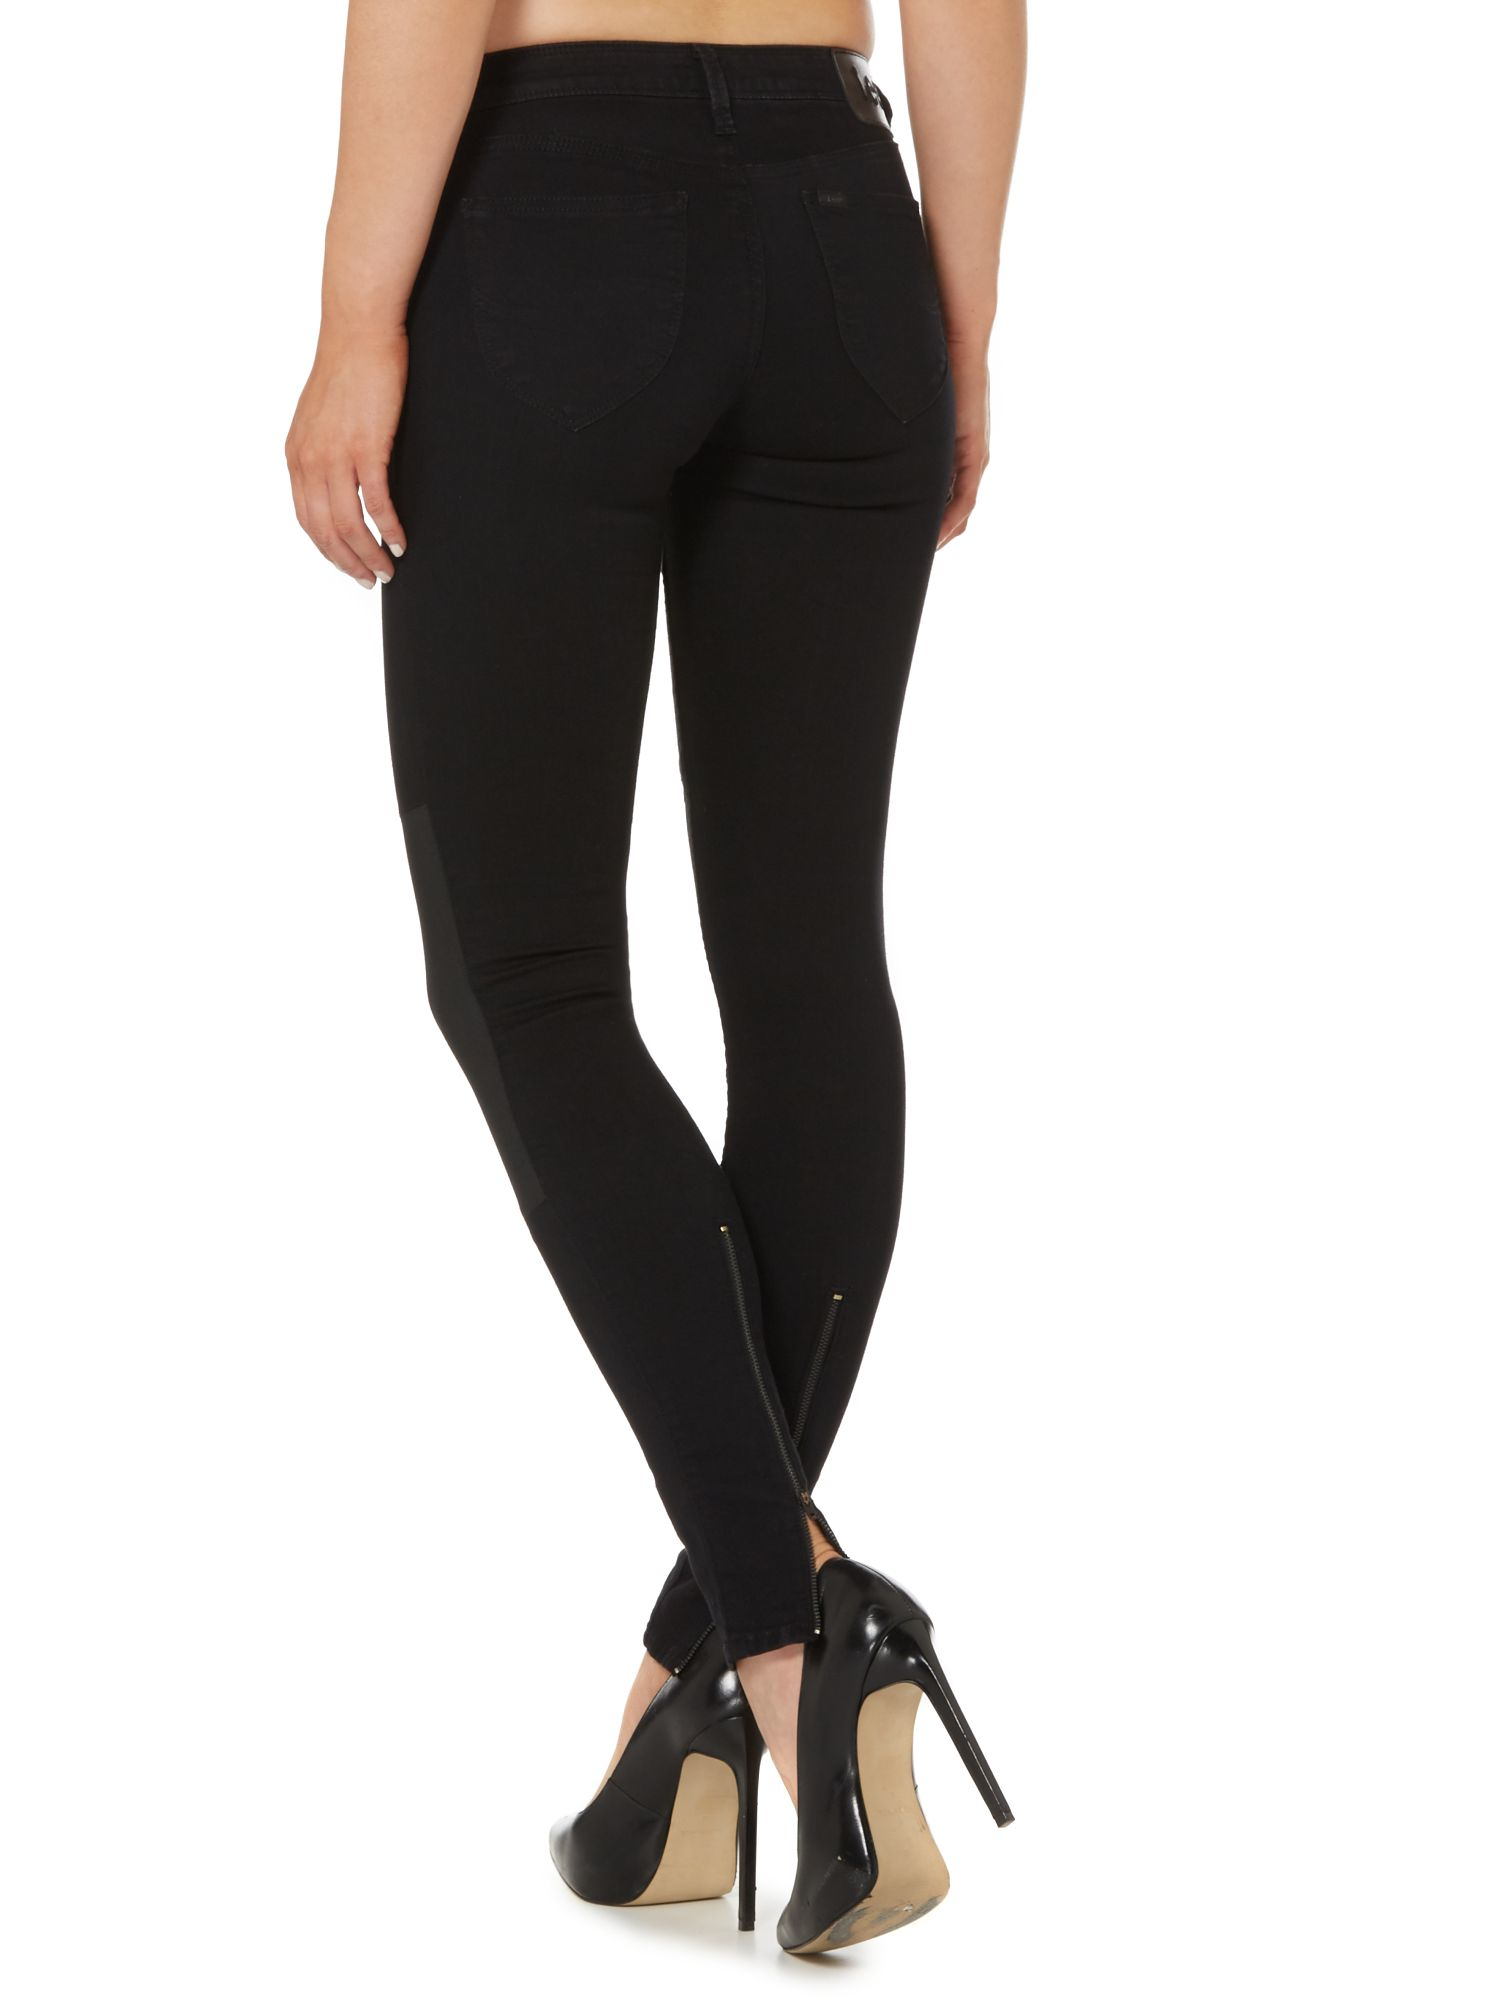 Lee jeans Toxey Super Skinny Coated Knee Jean With Zips in Black